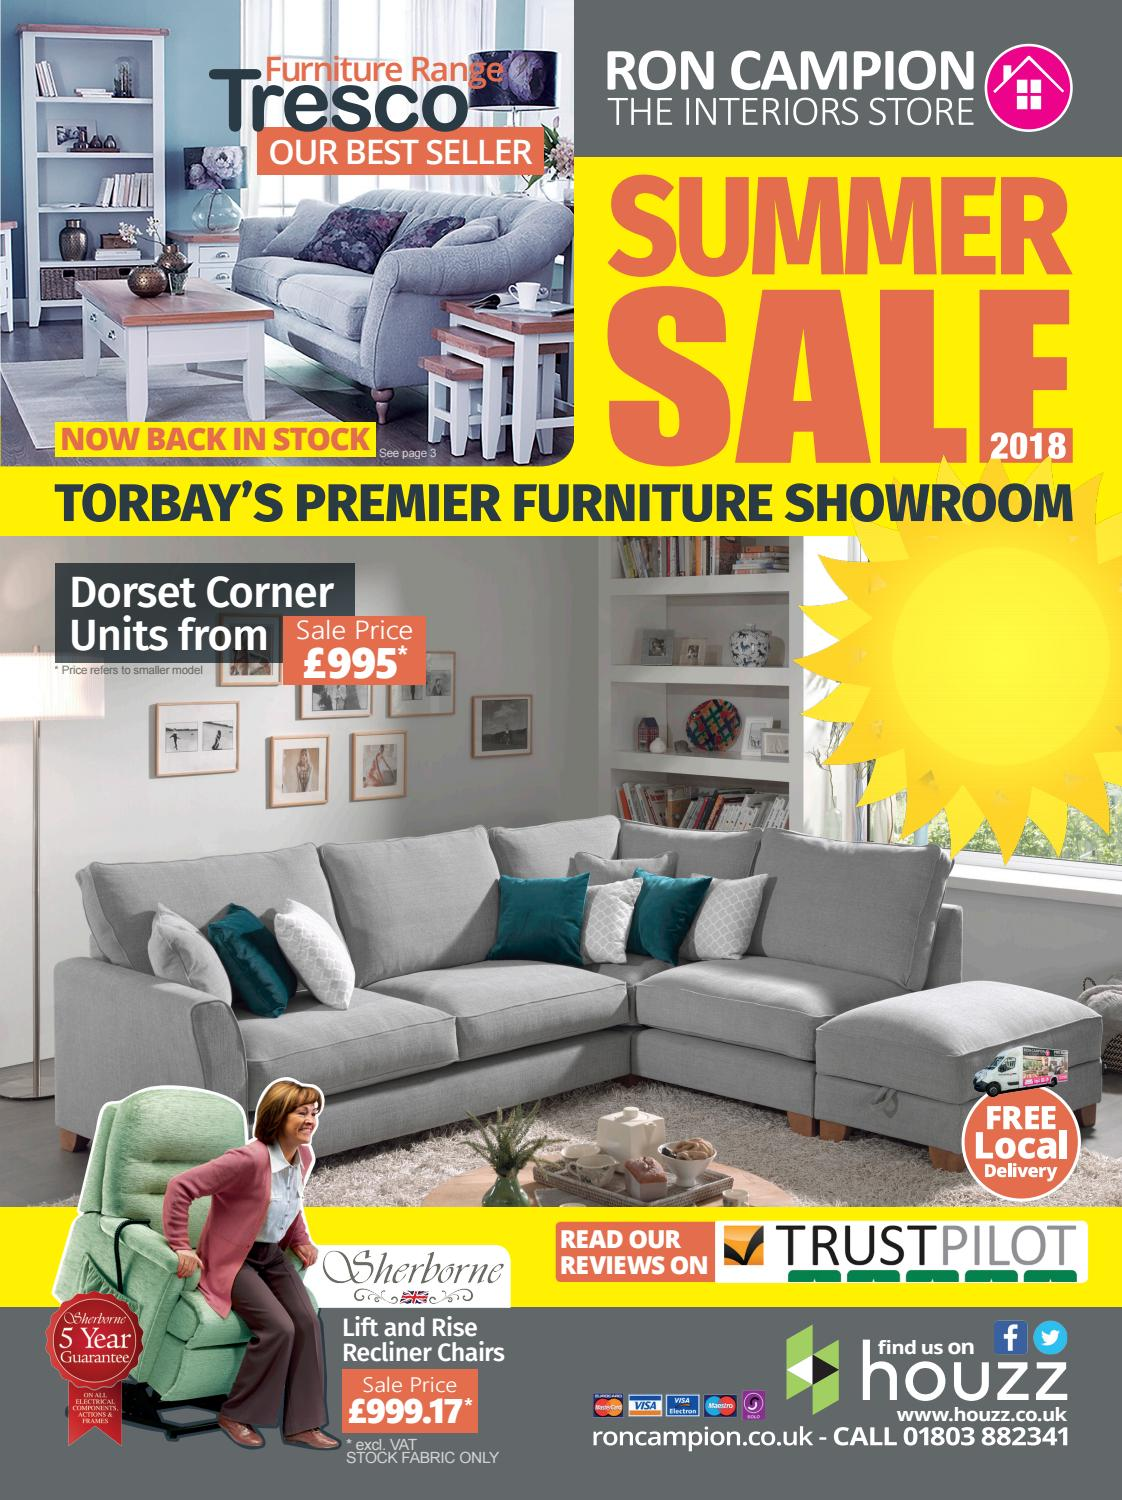 Ron Campion Summer Sale Brochure 2018 By Ron Campion Furnishers Issuu